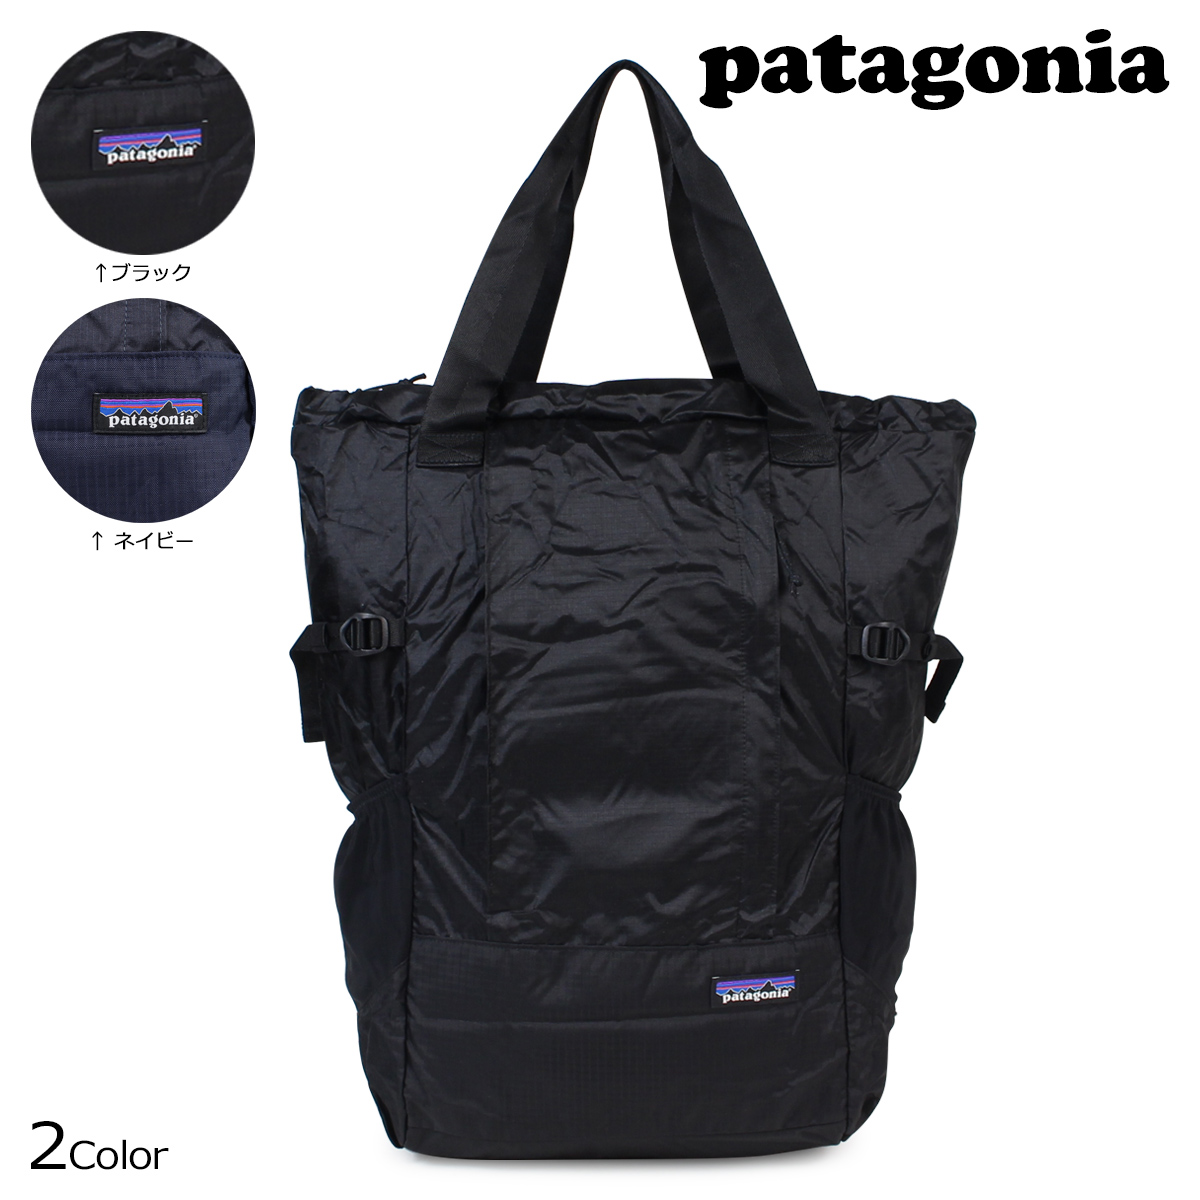 Patagonia Rucksack Tote Bag 22l Lightweight Travel Pack 48808 Men S Lady 9 15 Shinnyu Load 179